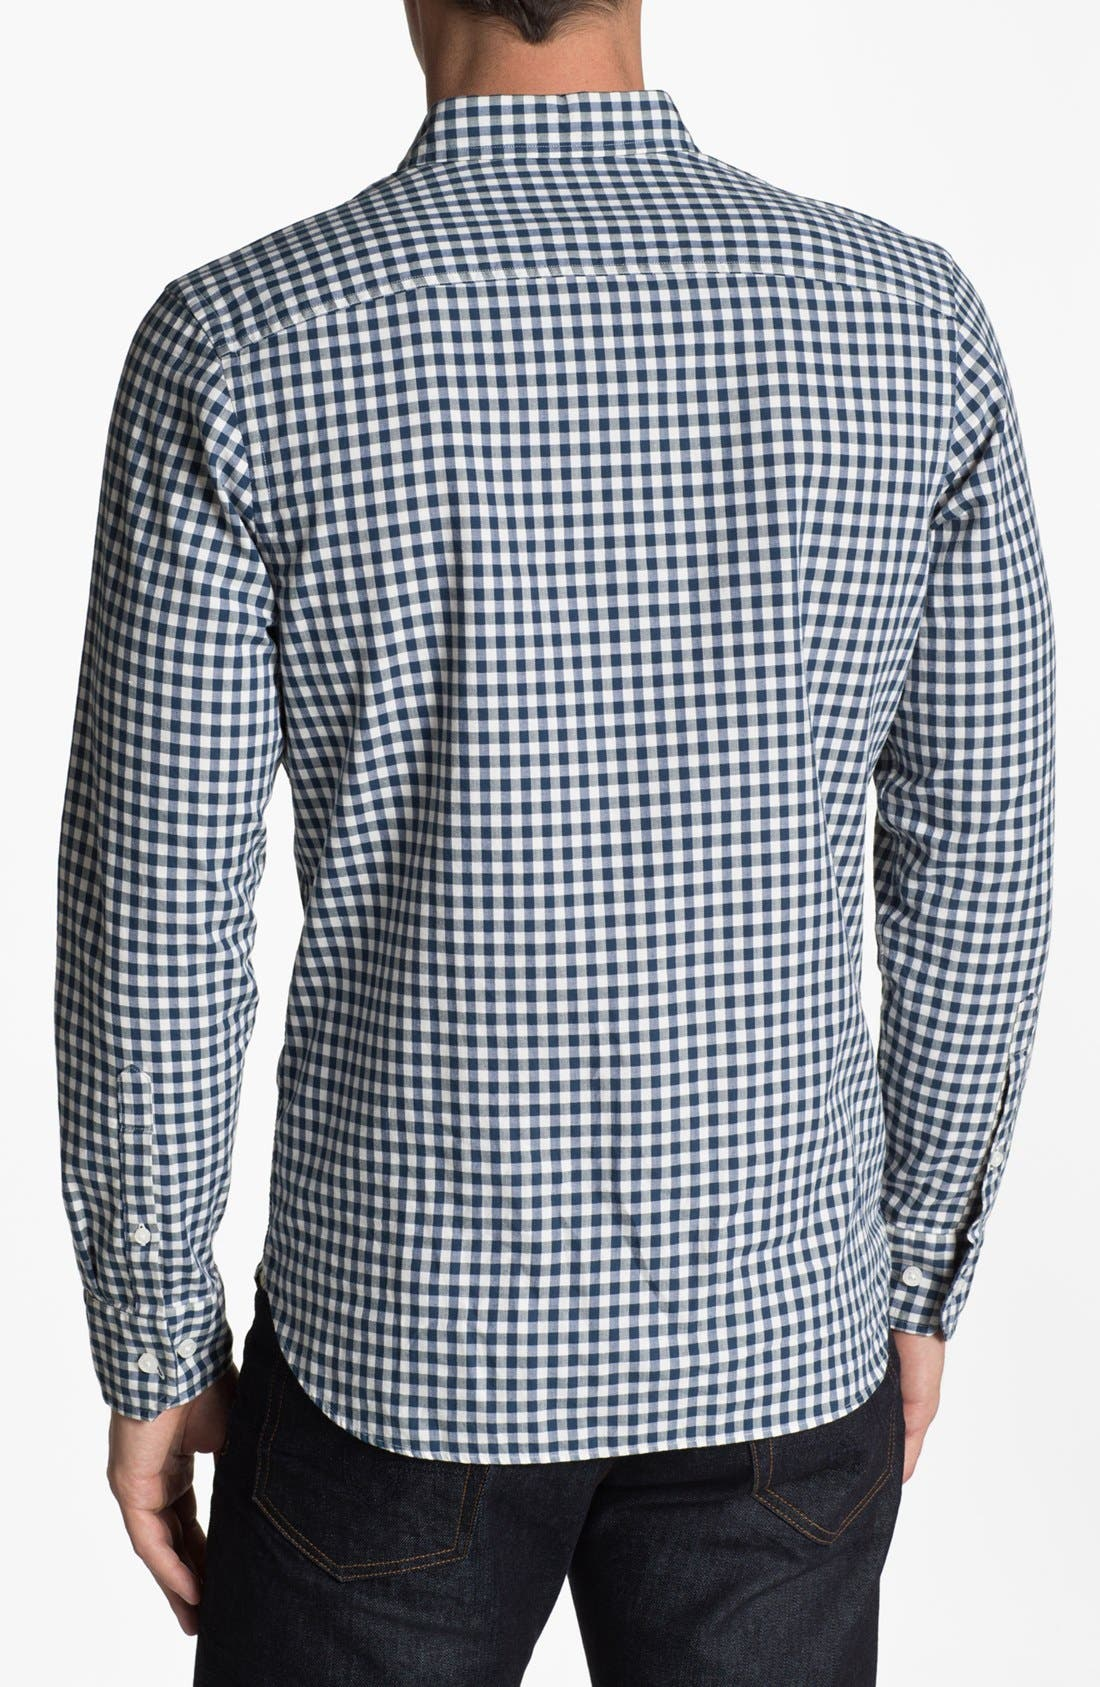 Alternate Image 2  - Wallin & Bros. Gingham Trim Fit Sport Shirt